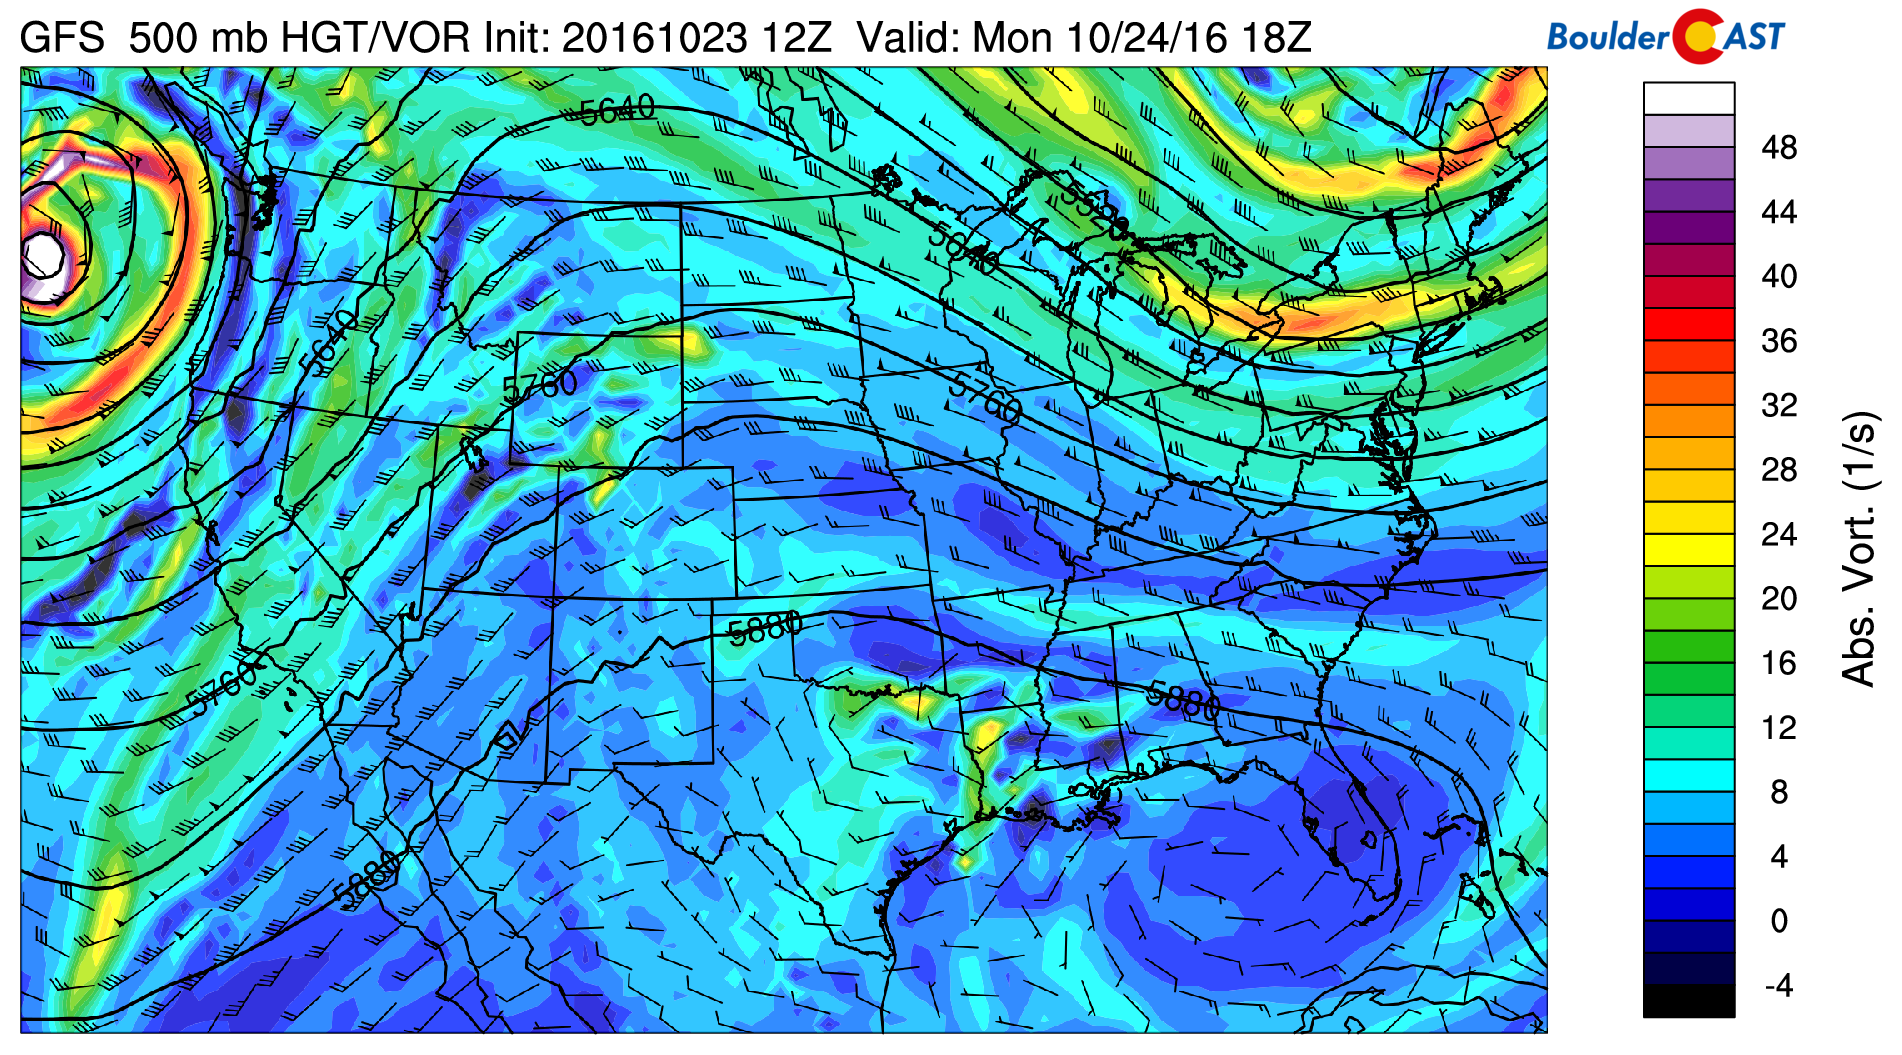 GFS 500 mb vorticity map for Monday